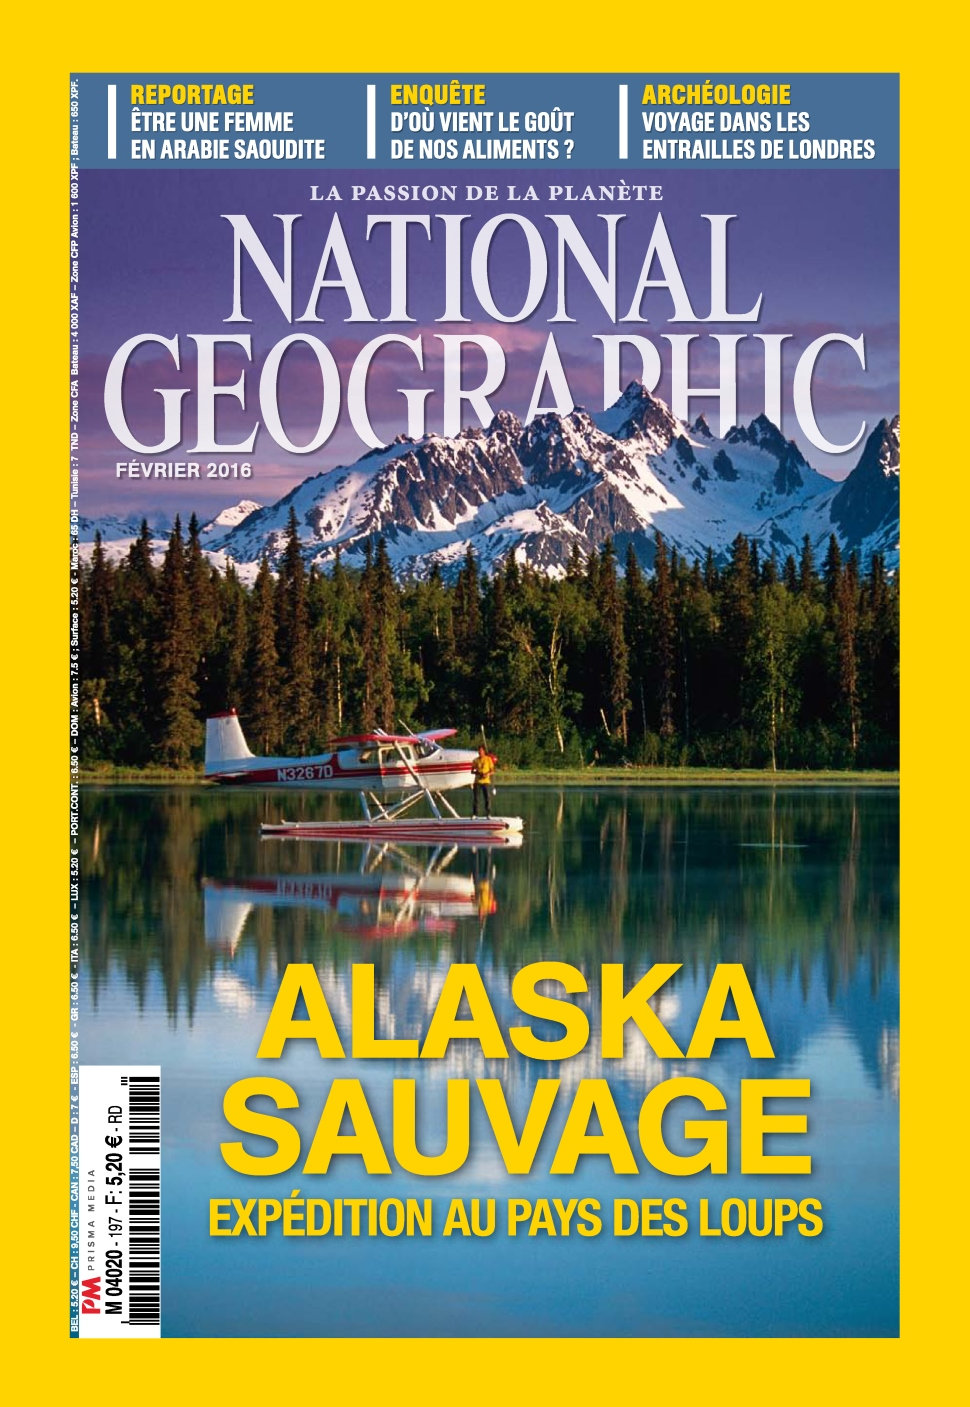 National Geographic N°197 – Alaska Sauvage sur Bookys